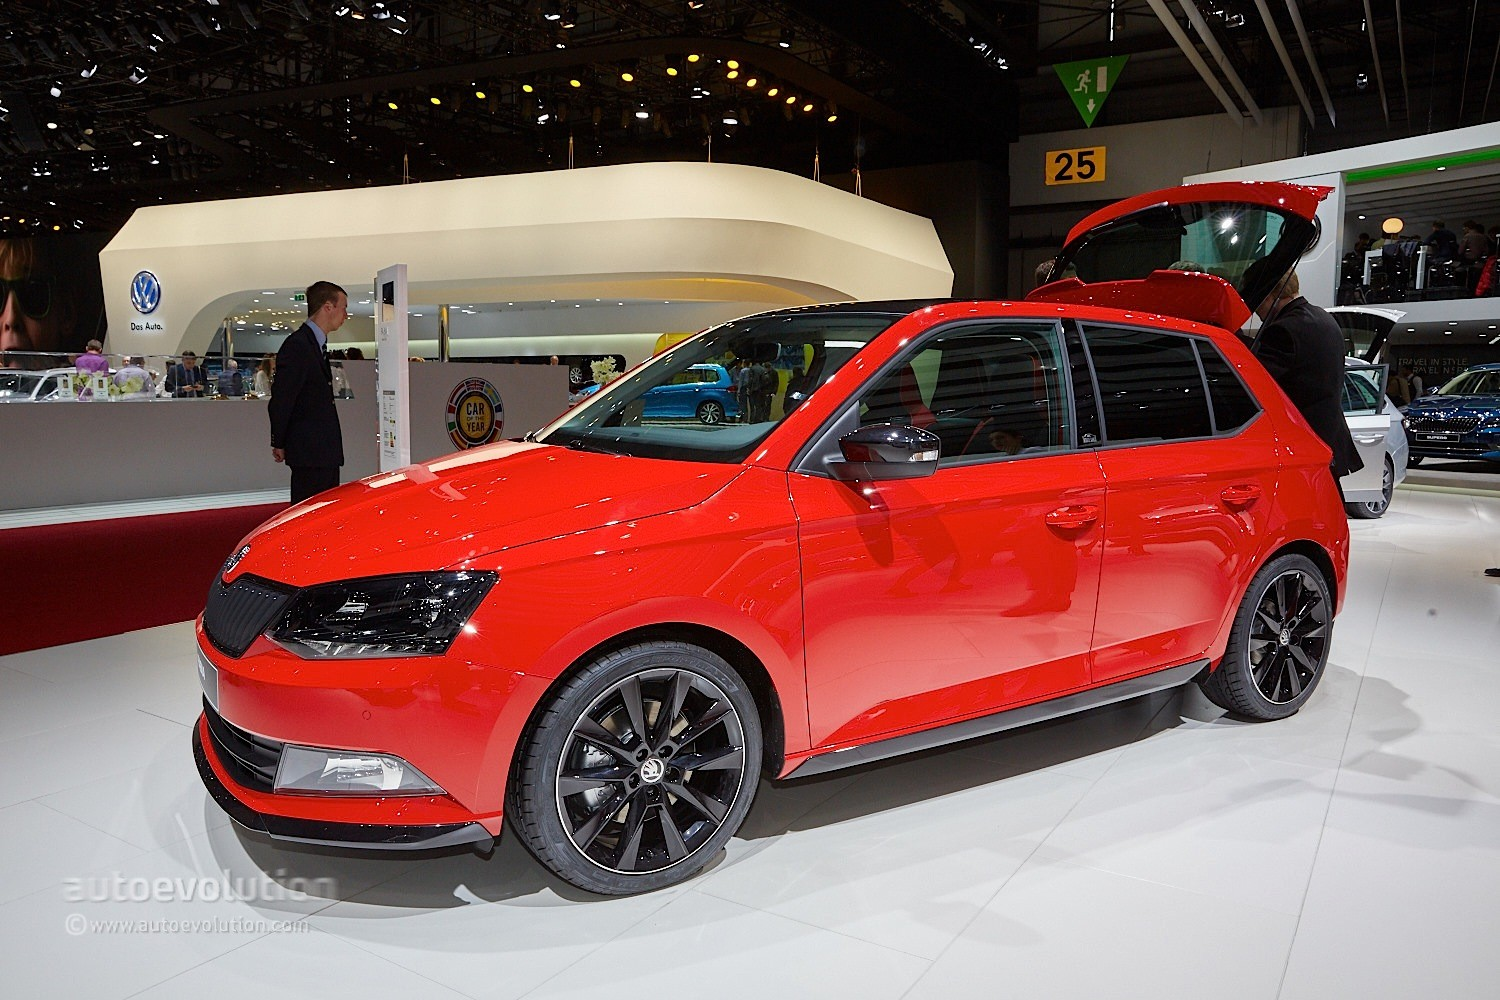 fabia monte carlo and octavia rs 230 show skoda 39 s naughty side in geneva autoevolution. Black Bedroom Furniture Sets. Home Design Ideas